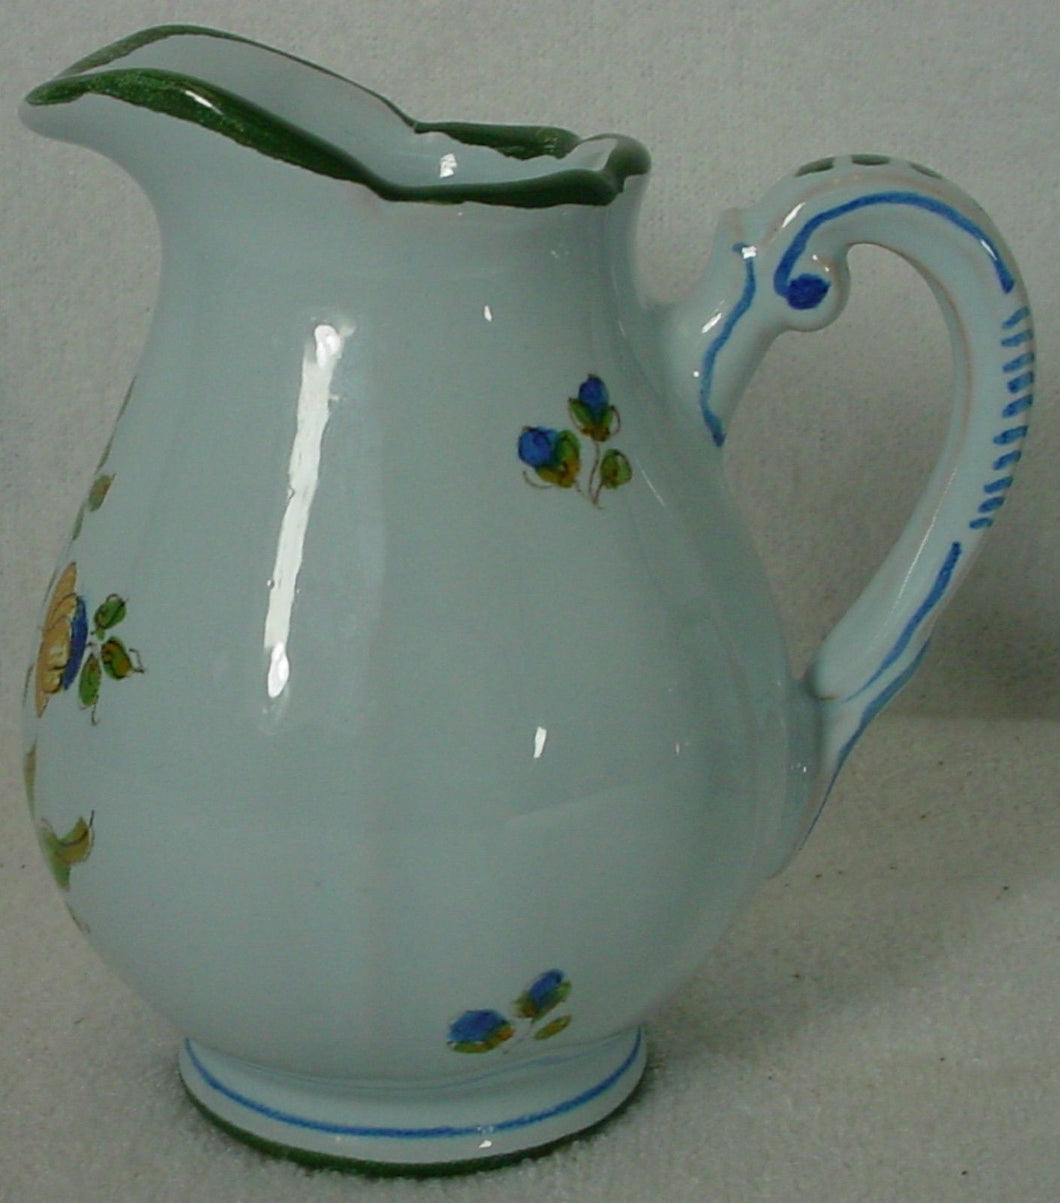 IMOLA china COOP FLORAL iml6 pattern CREAMER cream pitcher JUG 3-7/8